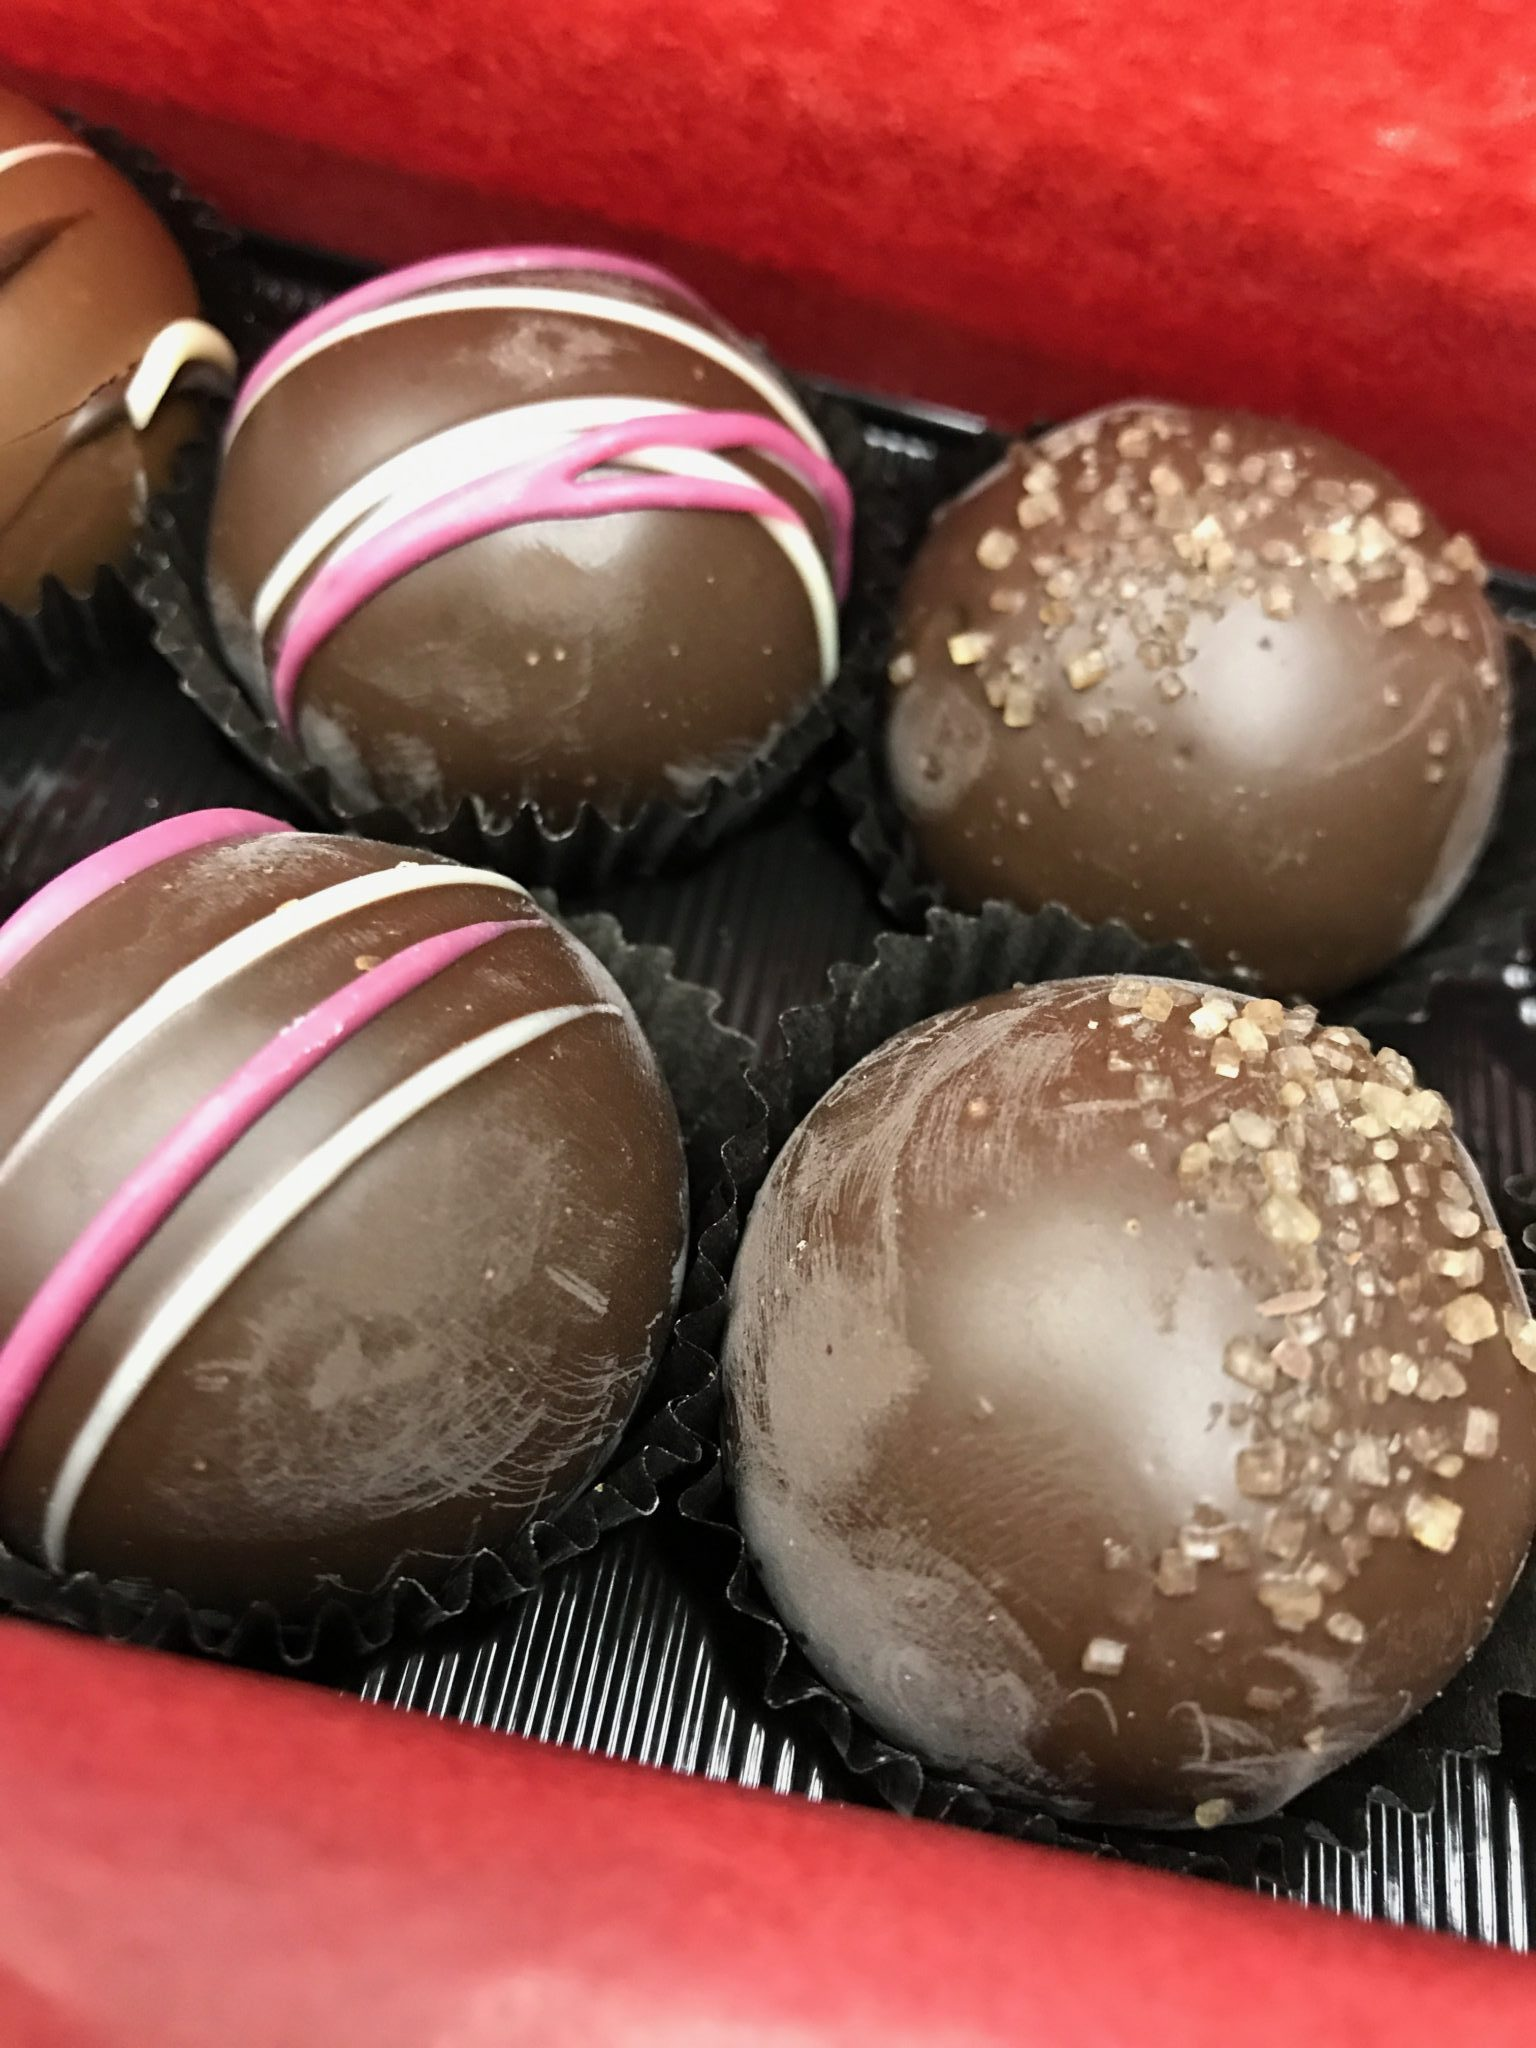 My Chocolate have gone white – Is it safe?